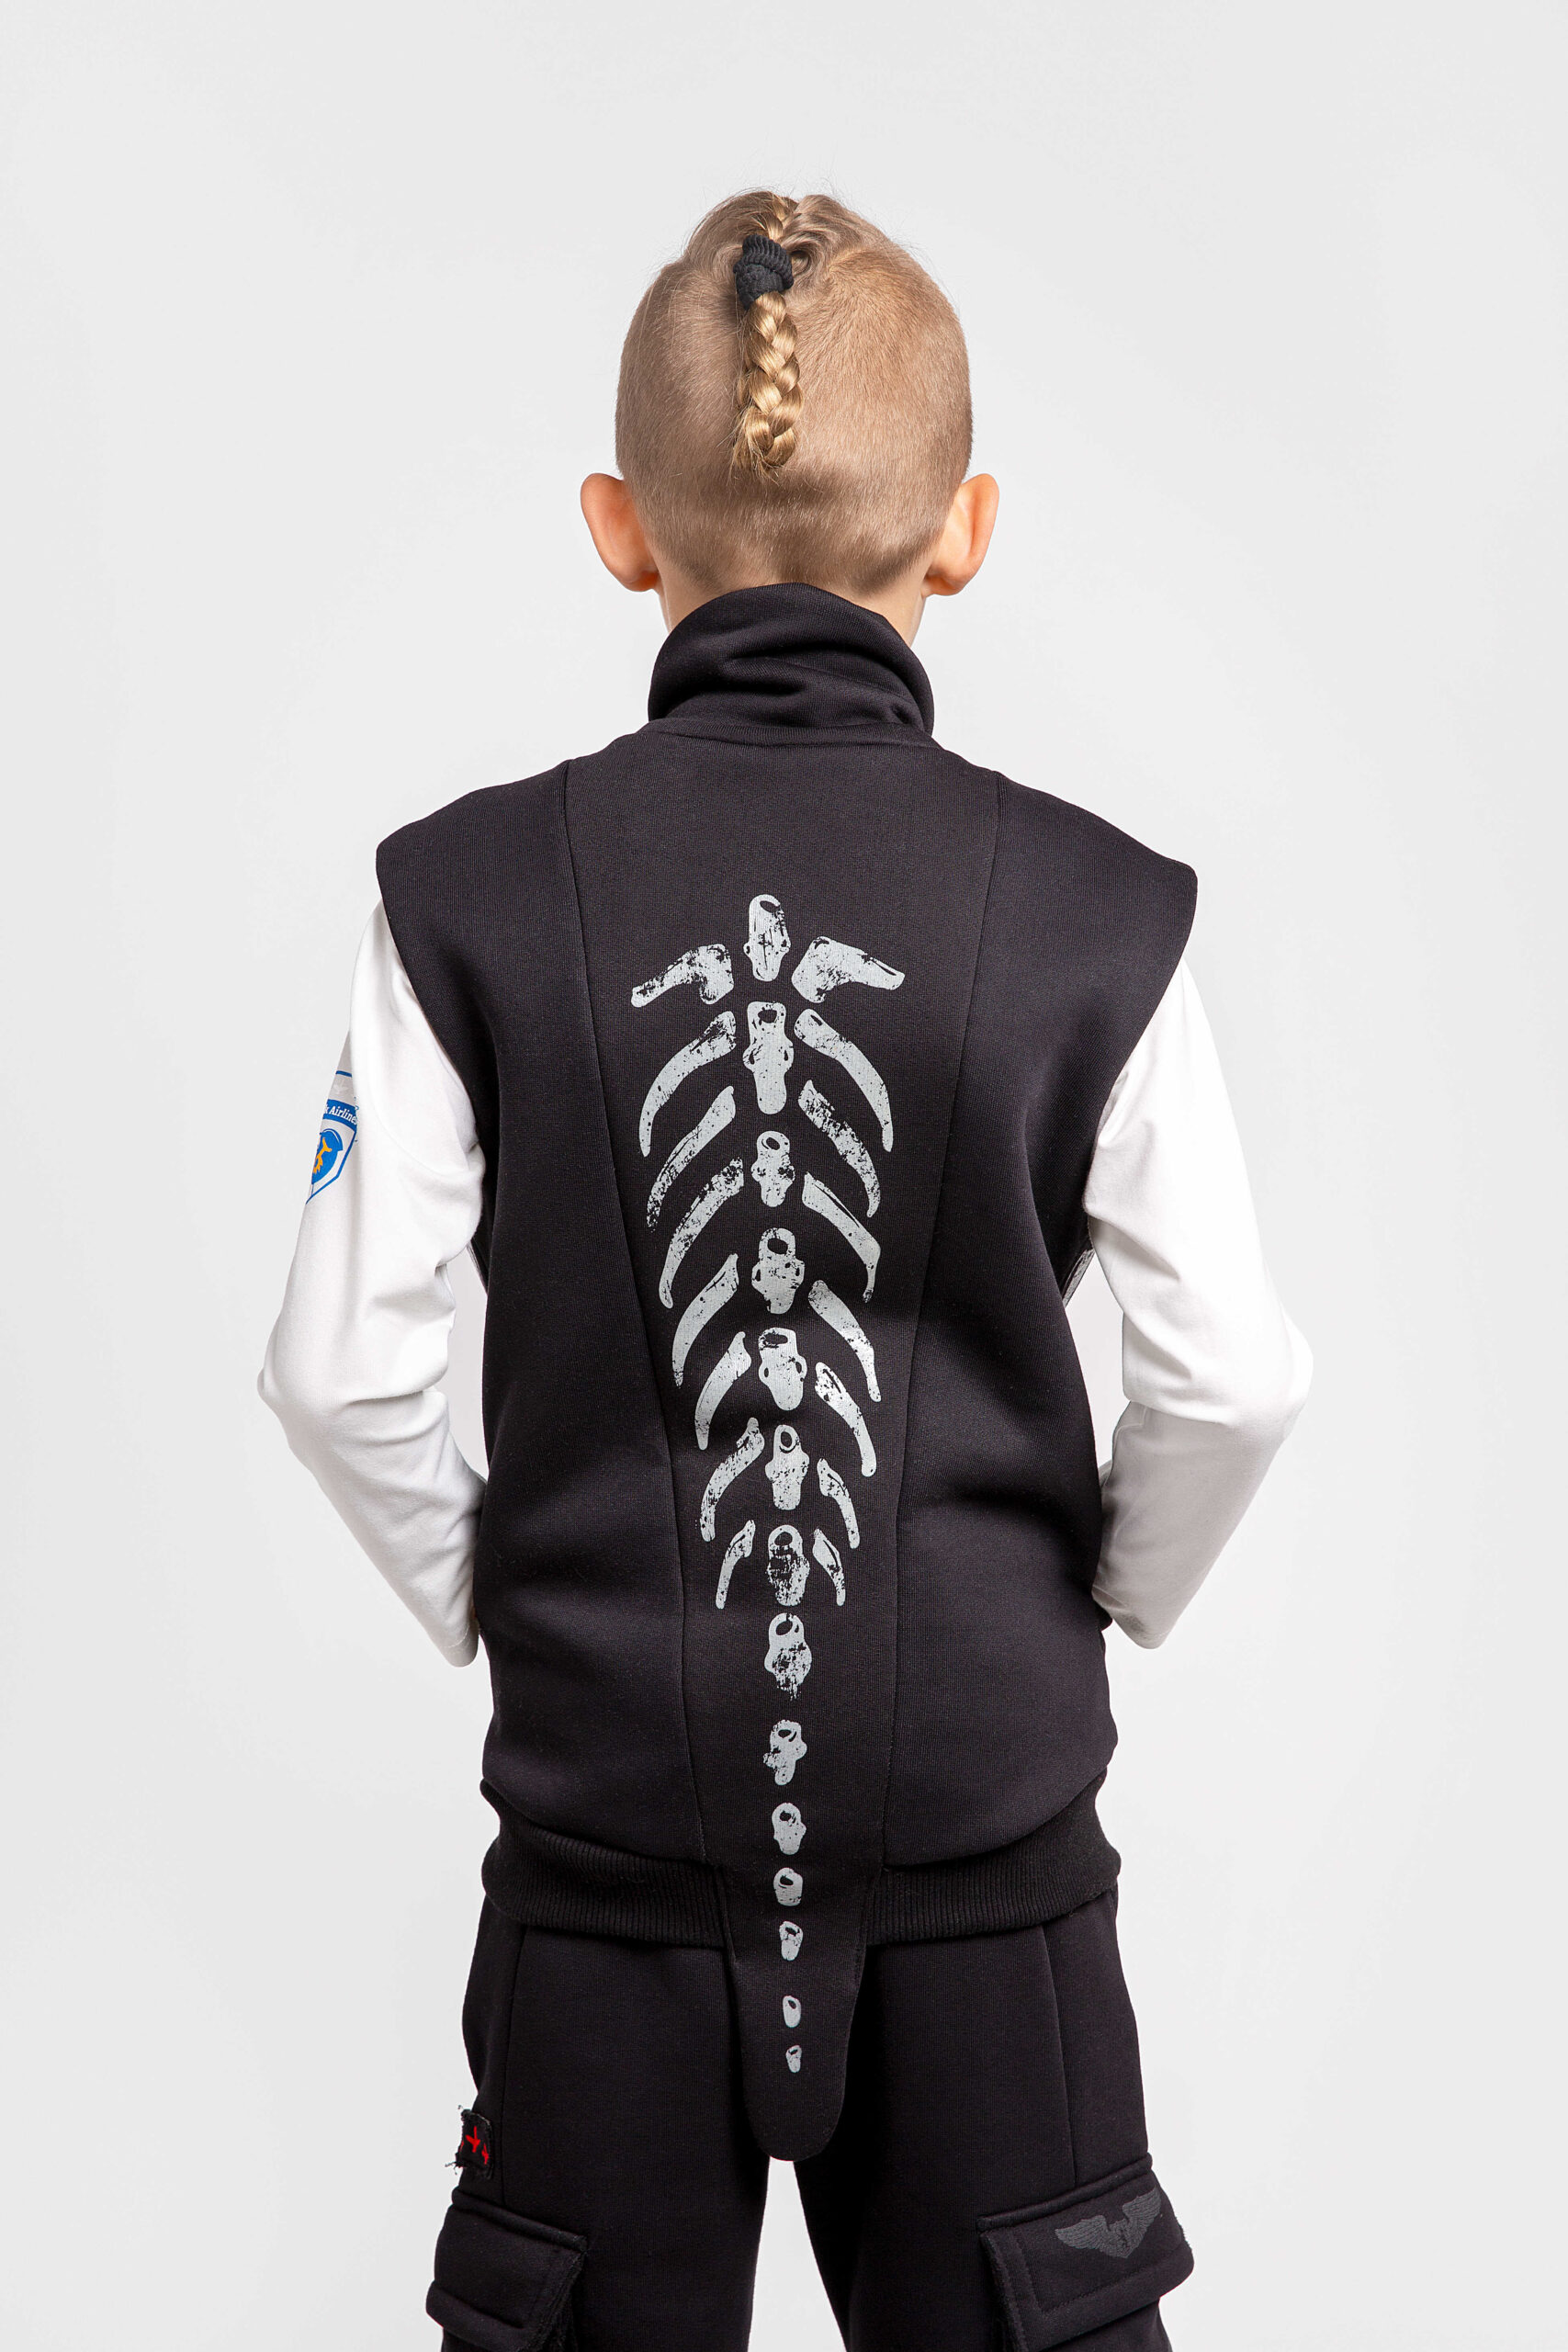 Kids Sleeveless Jacket Archaeopatrik. Color black.  Well suited for both boys and girls.